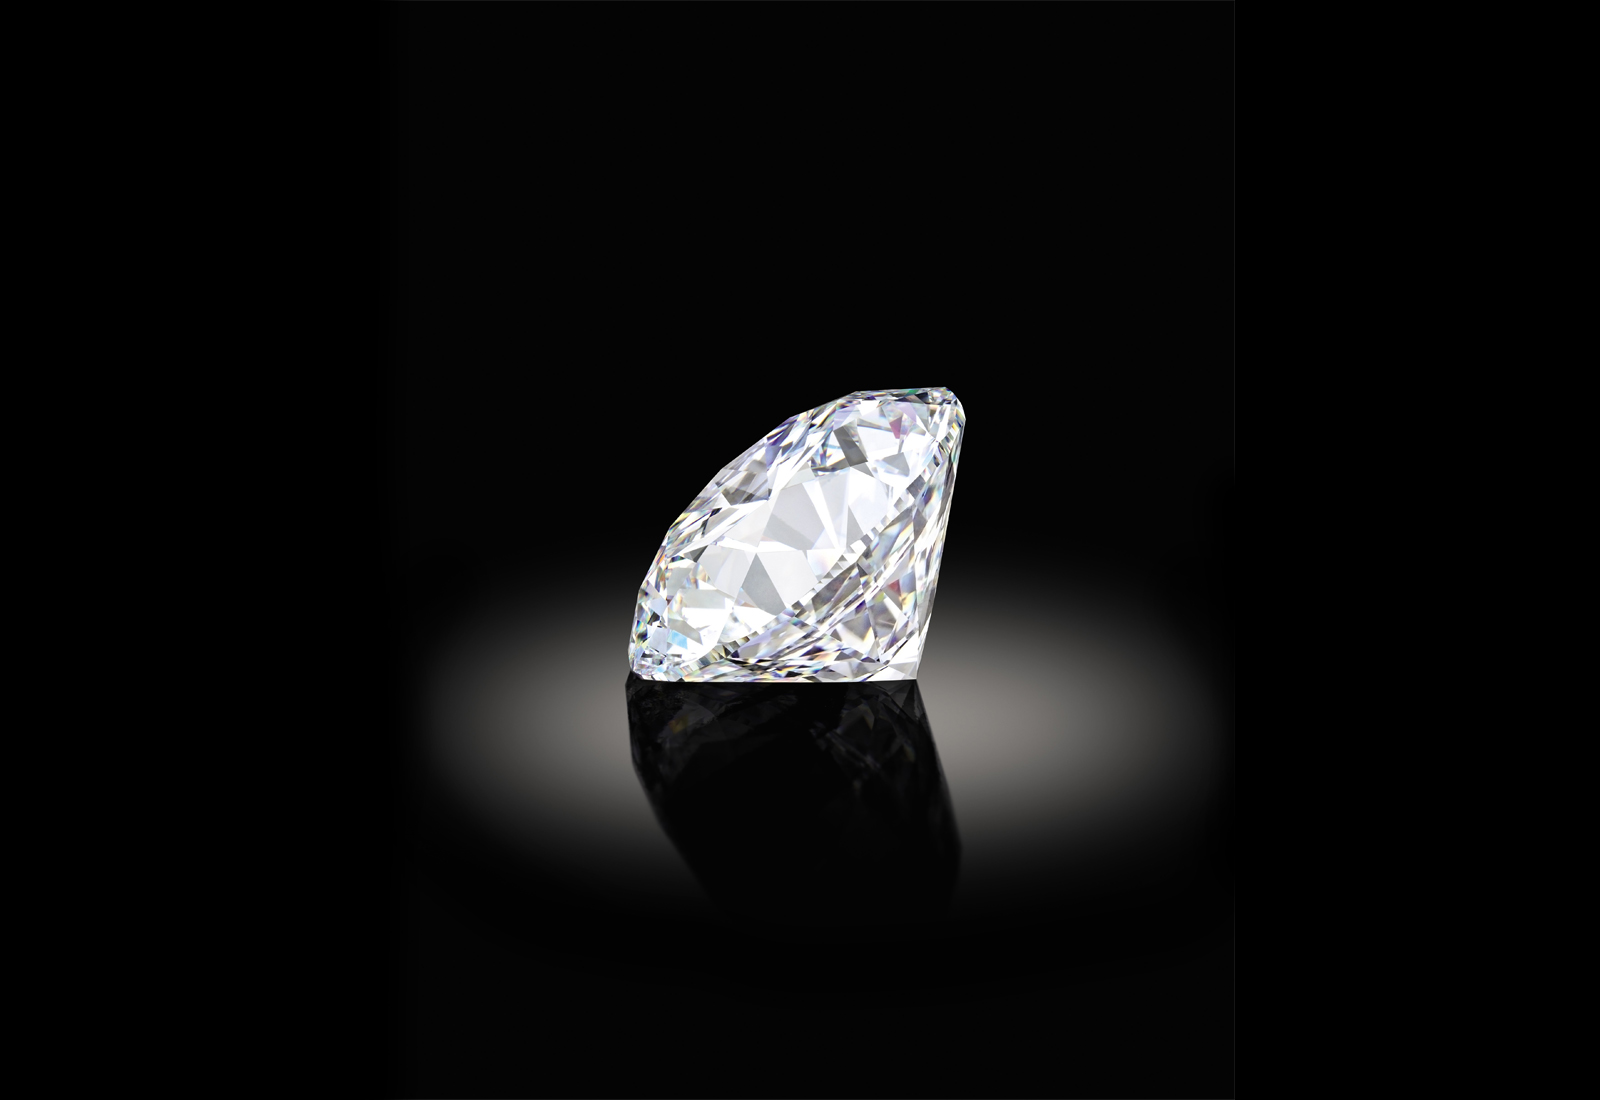 alexis natural cutalexis fancy ring radiant house flawless internally yellow carat diamond cut product